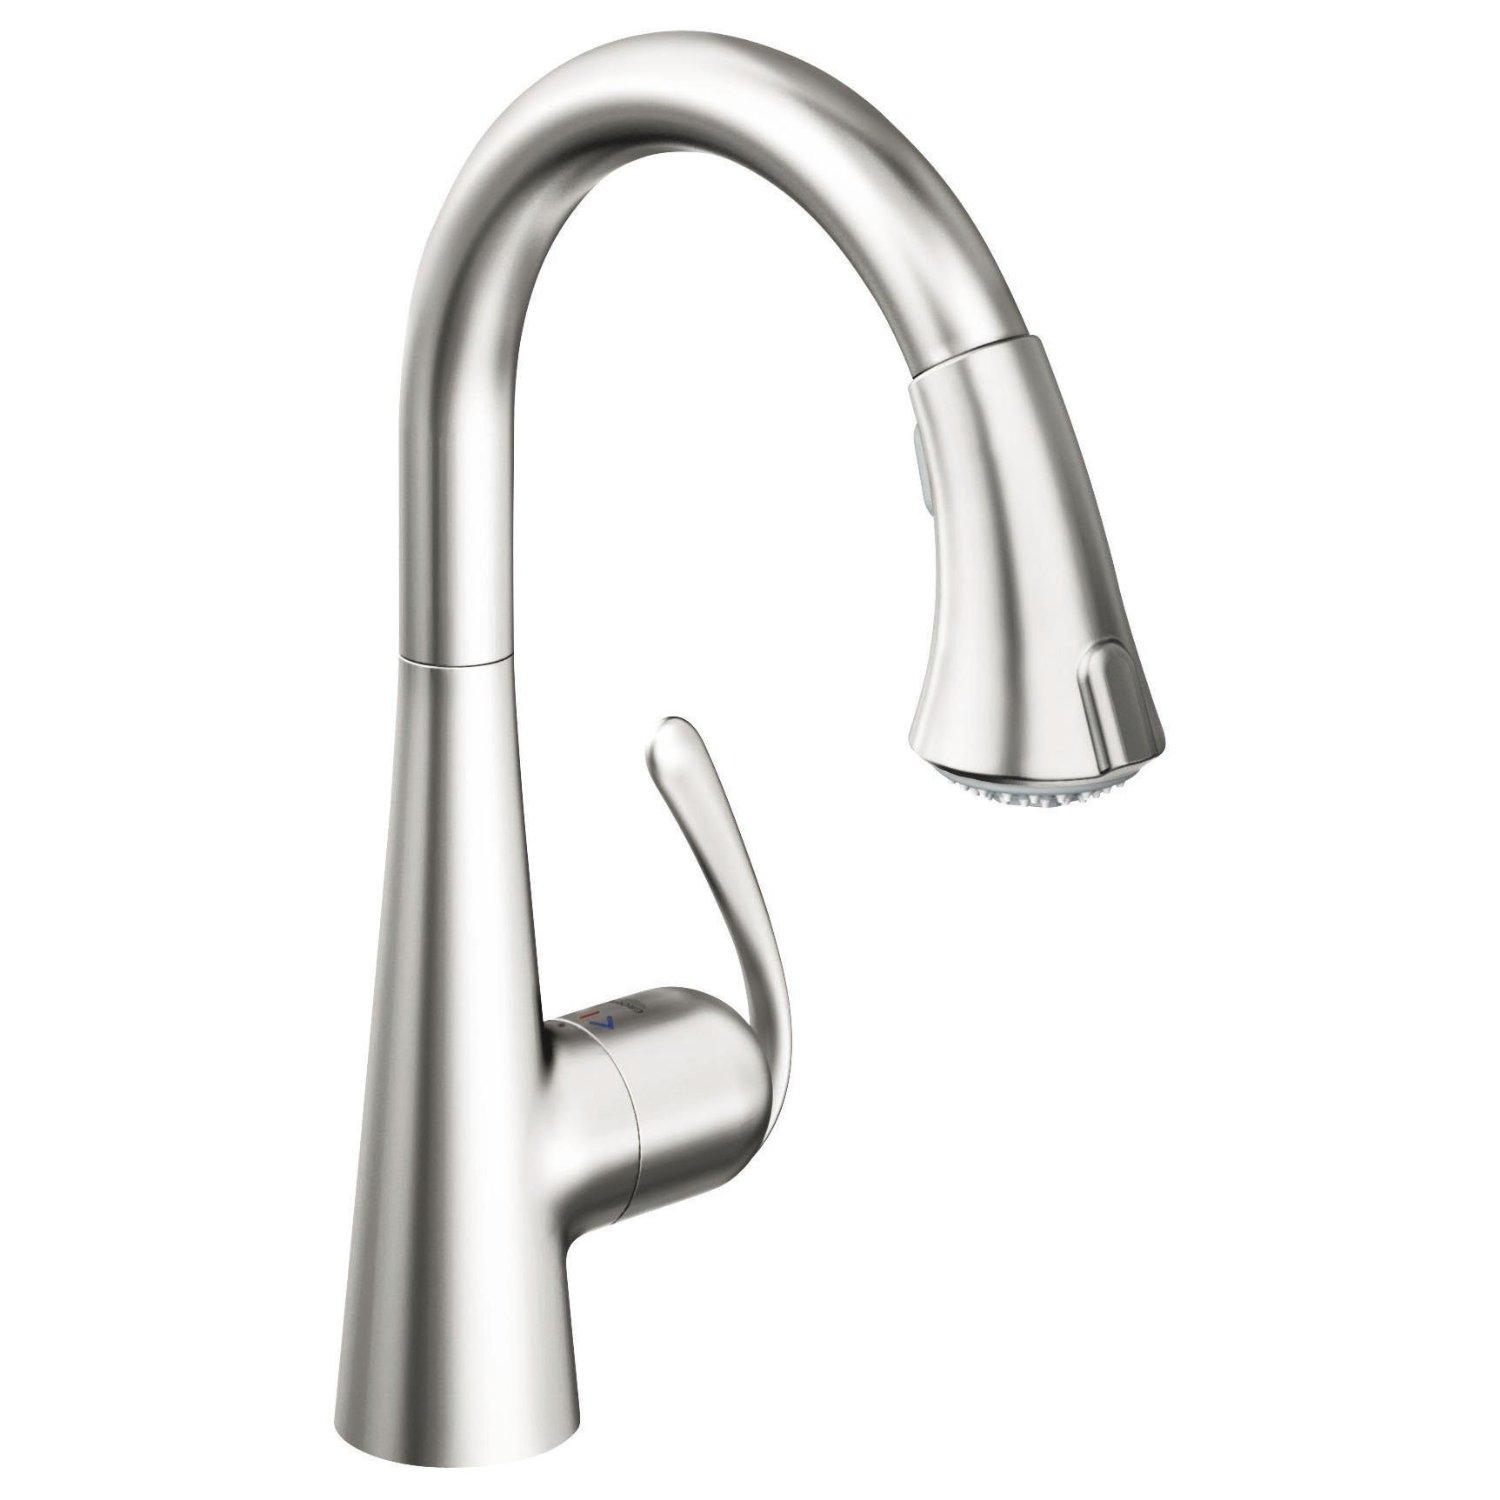 Ideas, decor fabulous grohe faucets for contemporary kitchen decoration for size 1500 x 1500  .